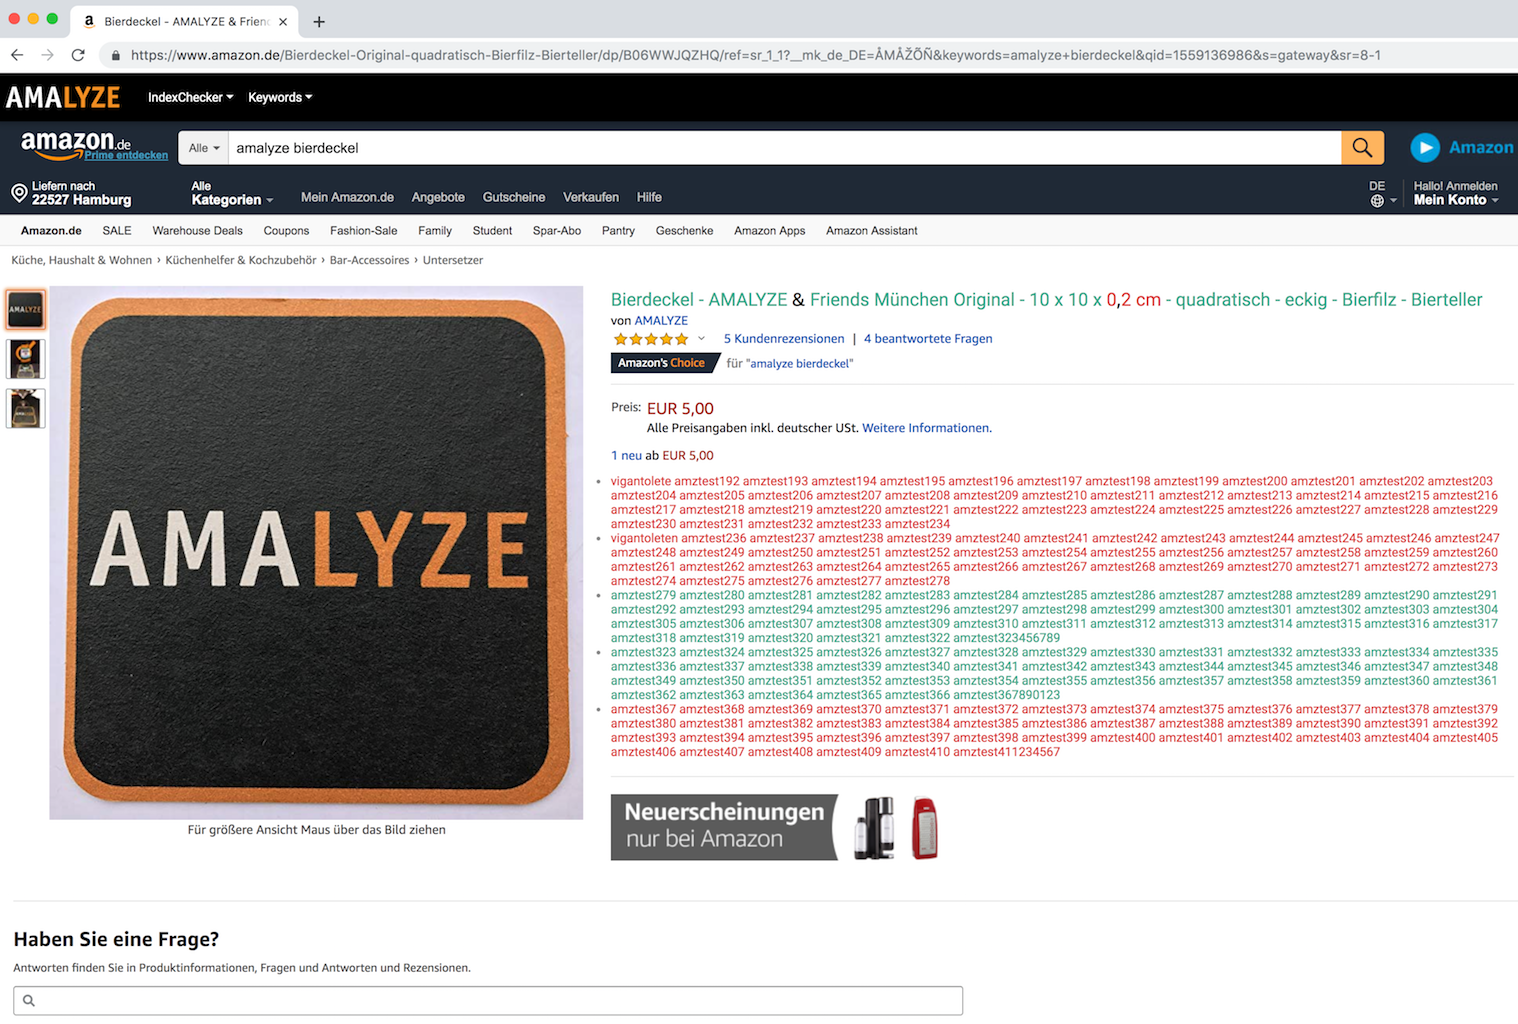 AMALYZE Browser Extension_kostenloses Amazon Tool ASIN Onpage Index Check